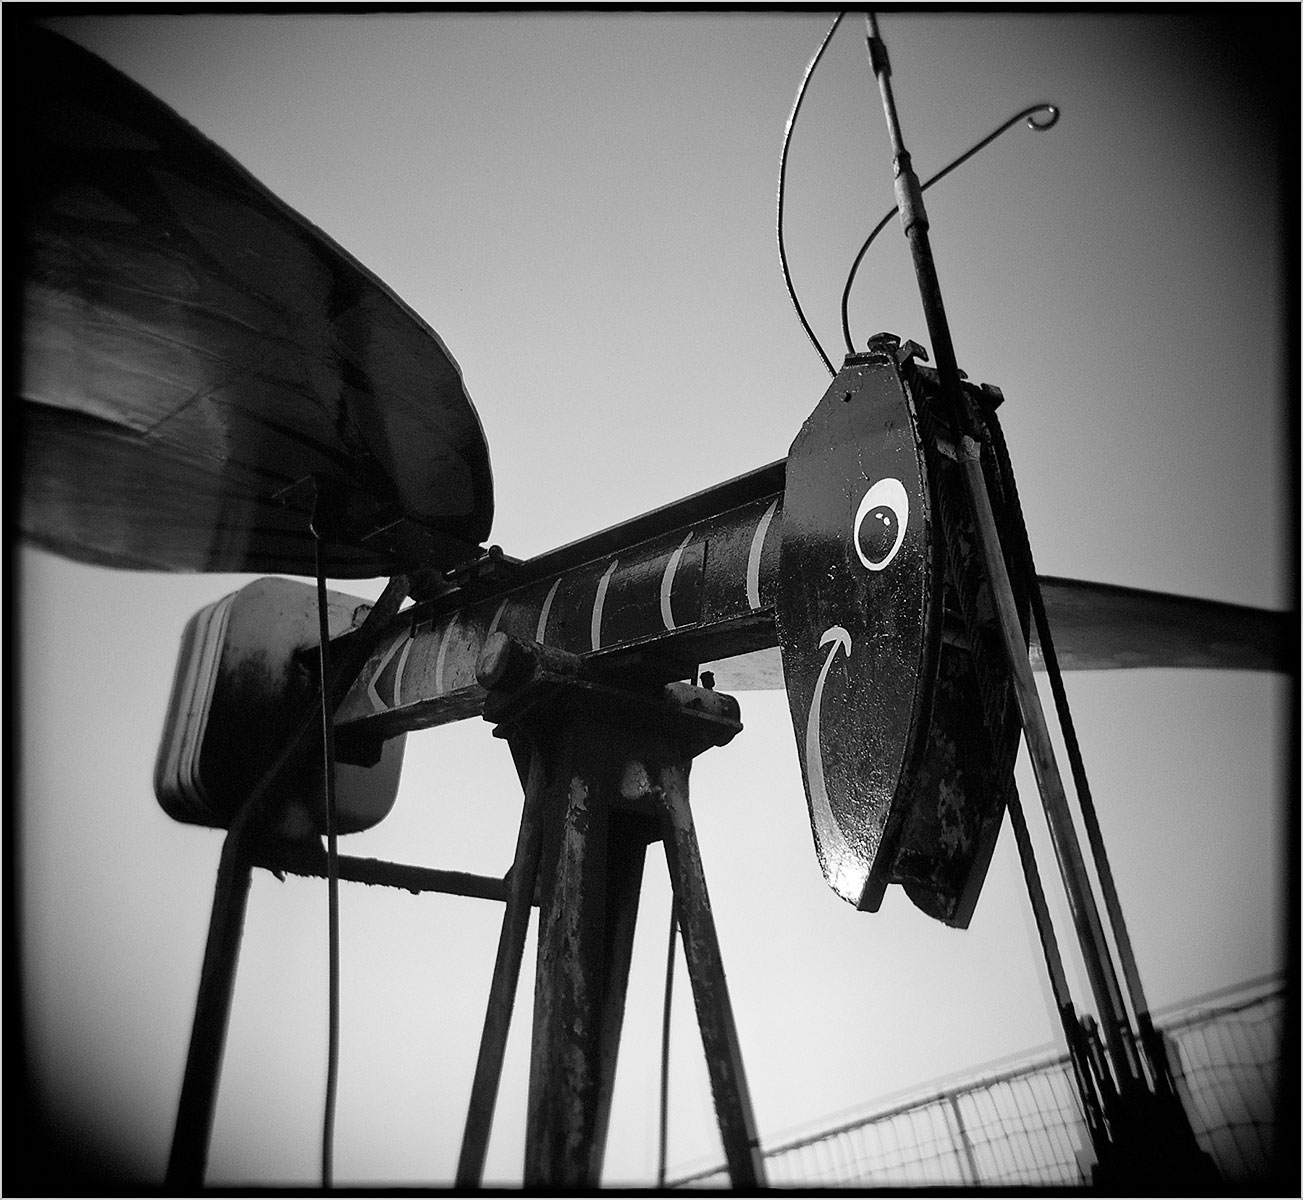 Pump Jack #2 (The Butterfly)